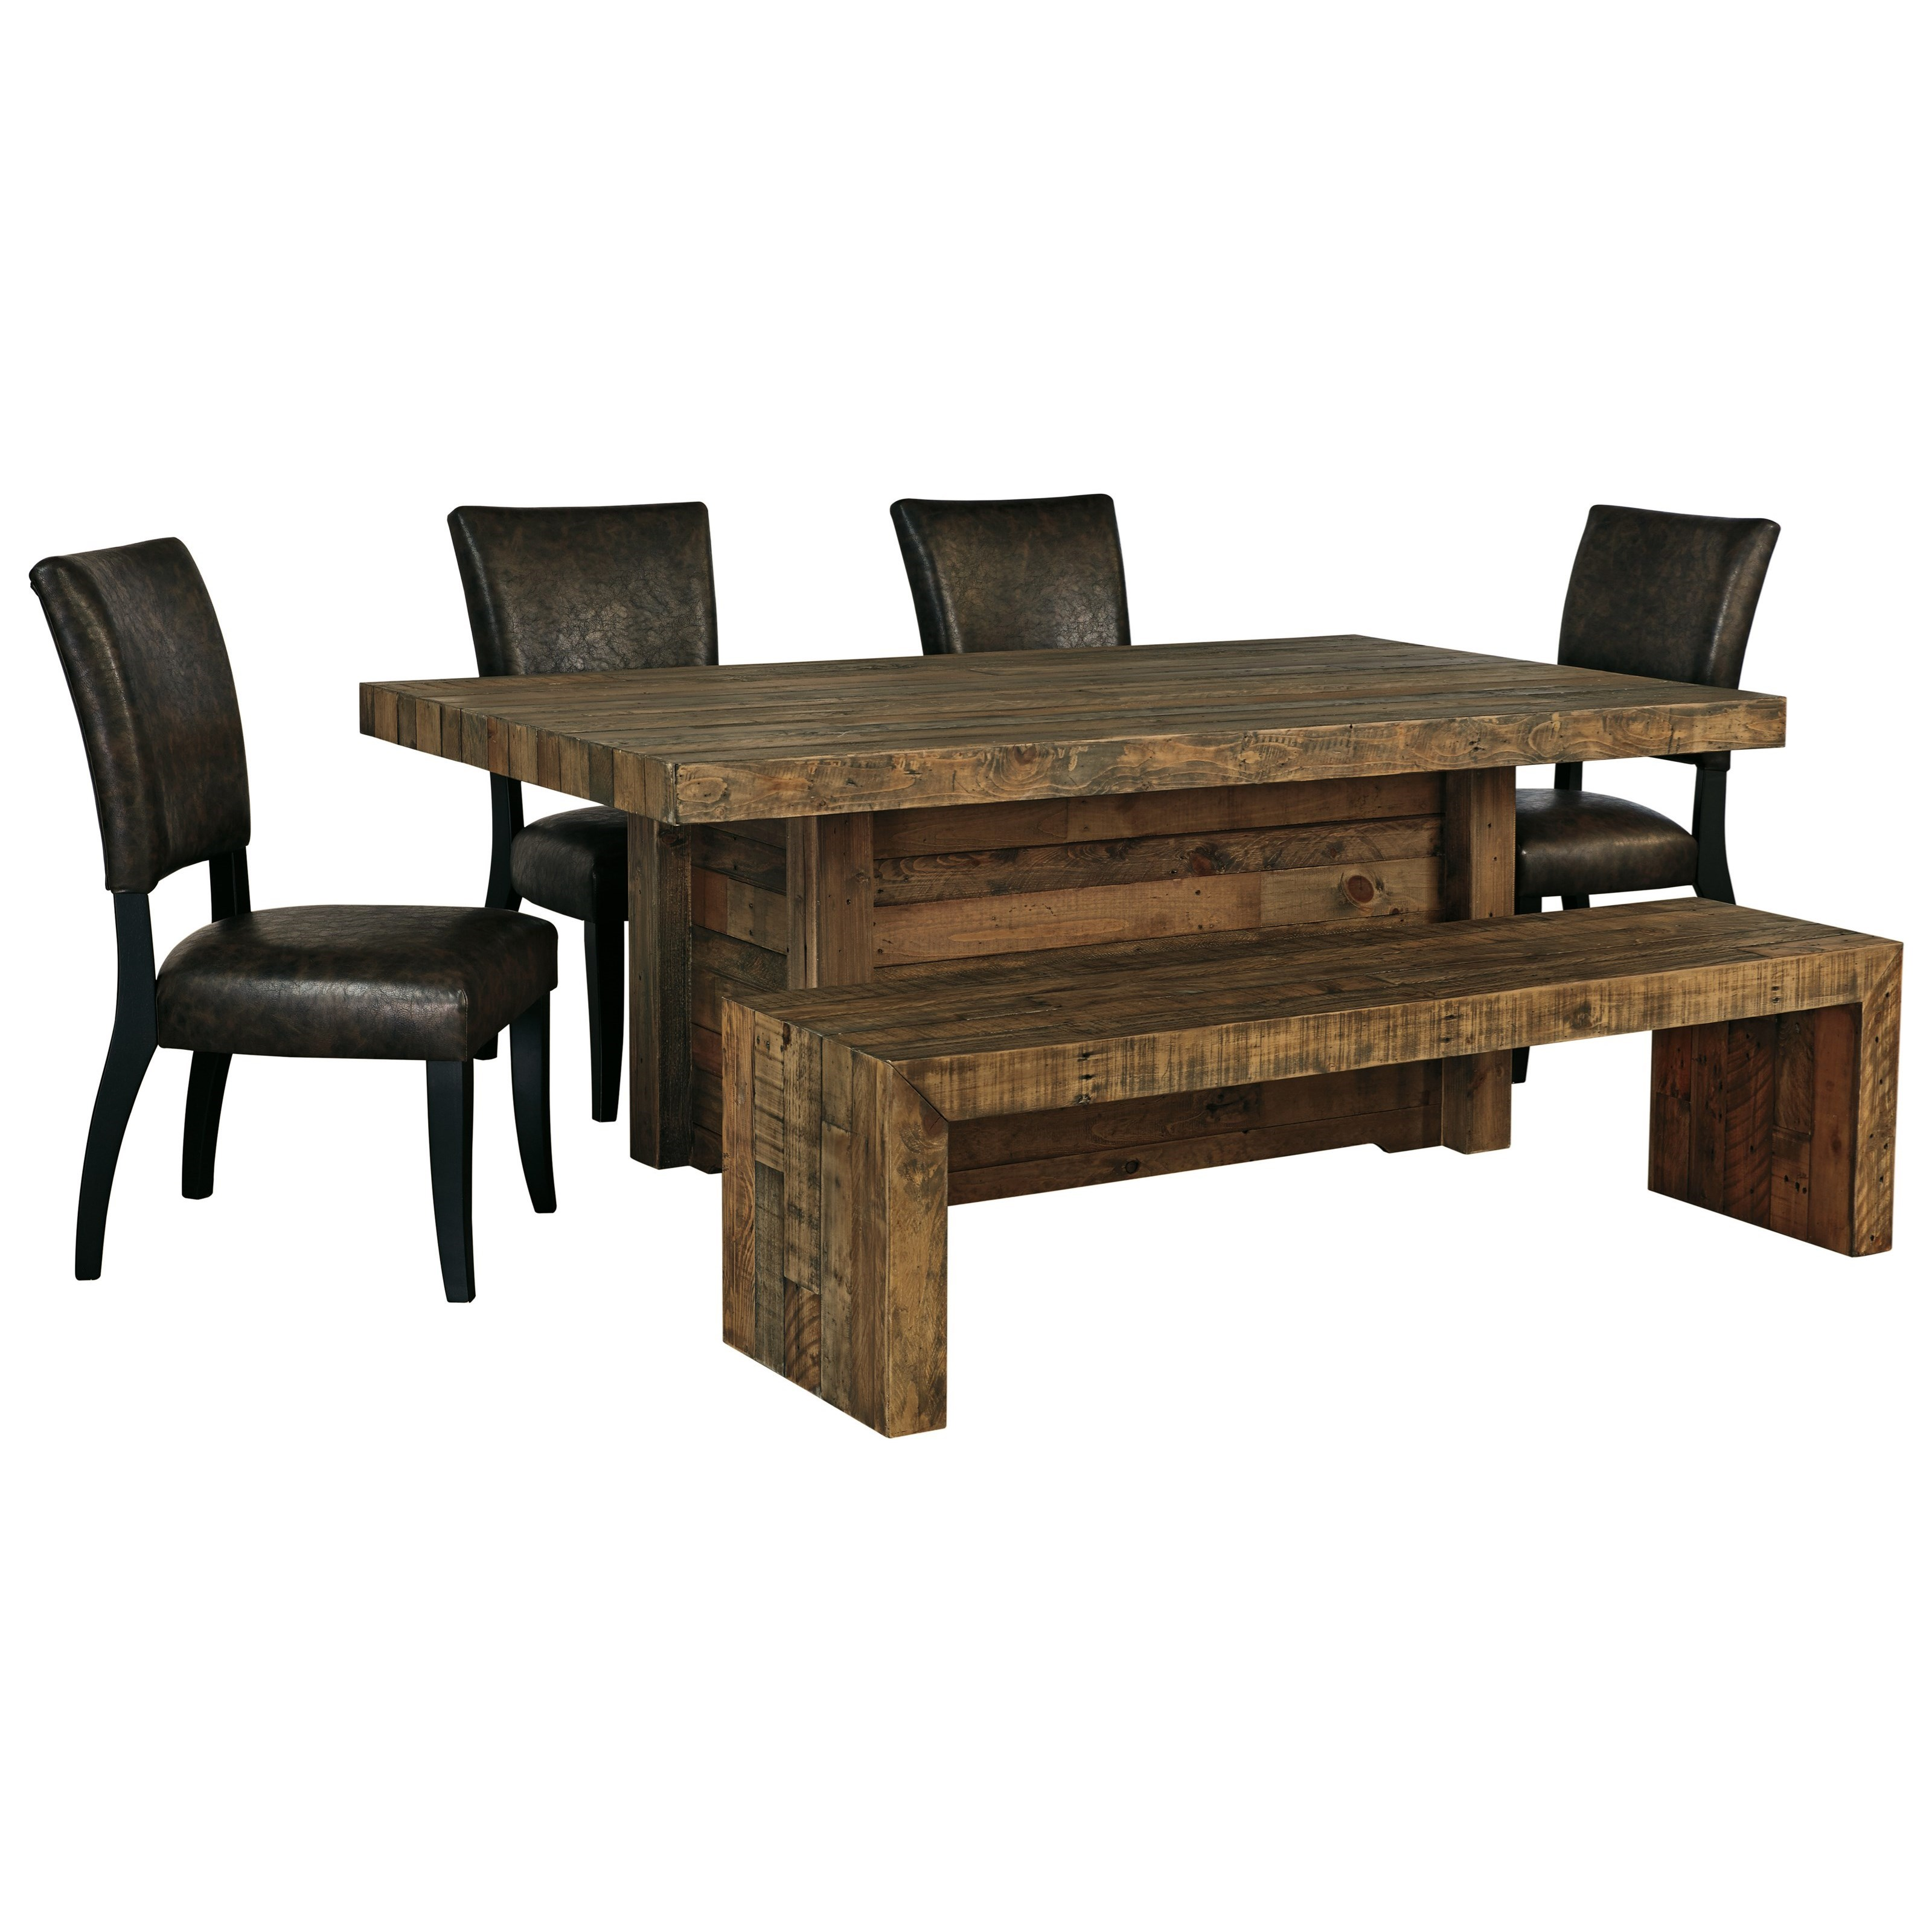 Sommerford 6-Piece Table Set with Bench by Ashley (Signature Design) at Johnny Janosik